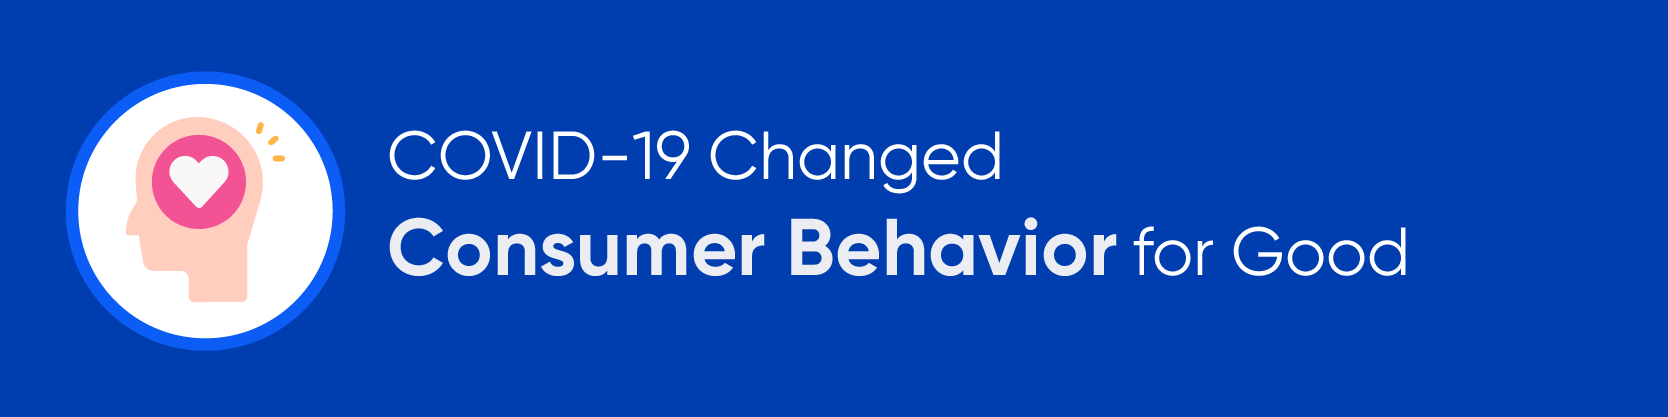 COVID-19 Changed Consumer Behavior for Good